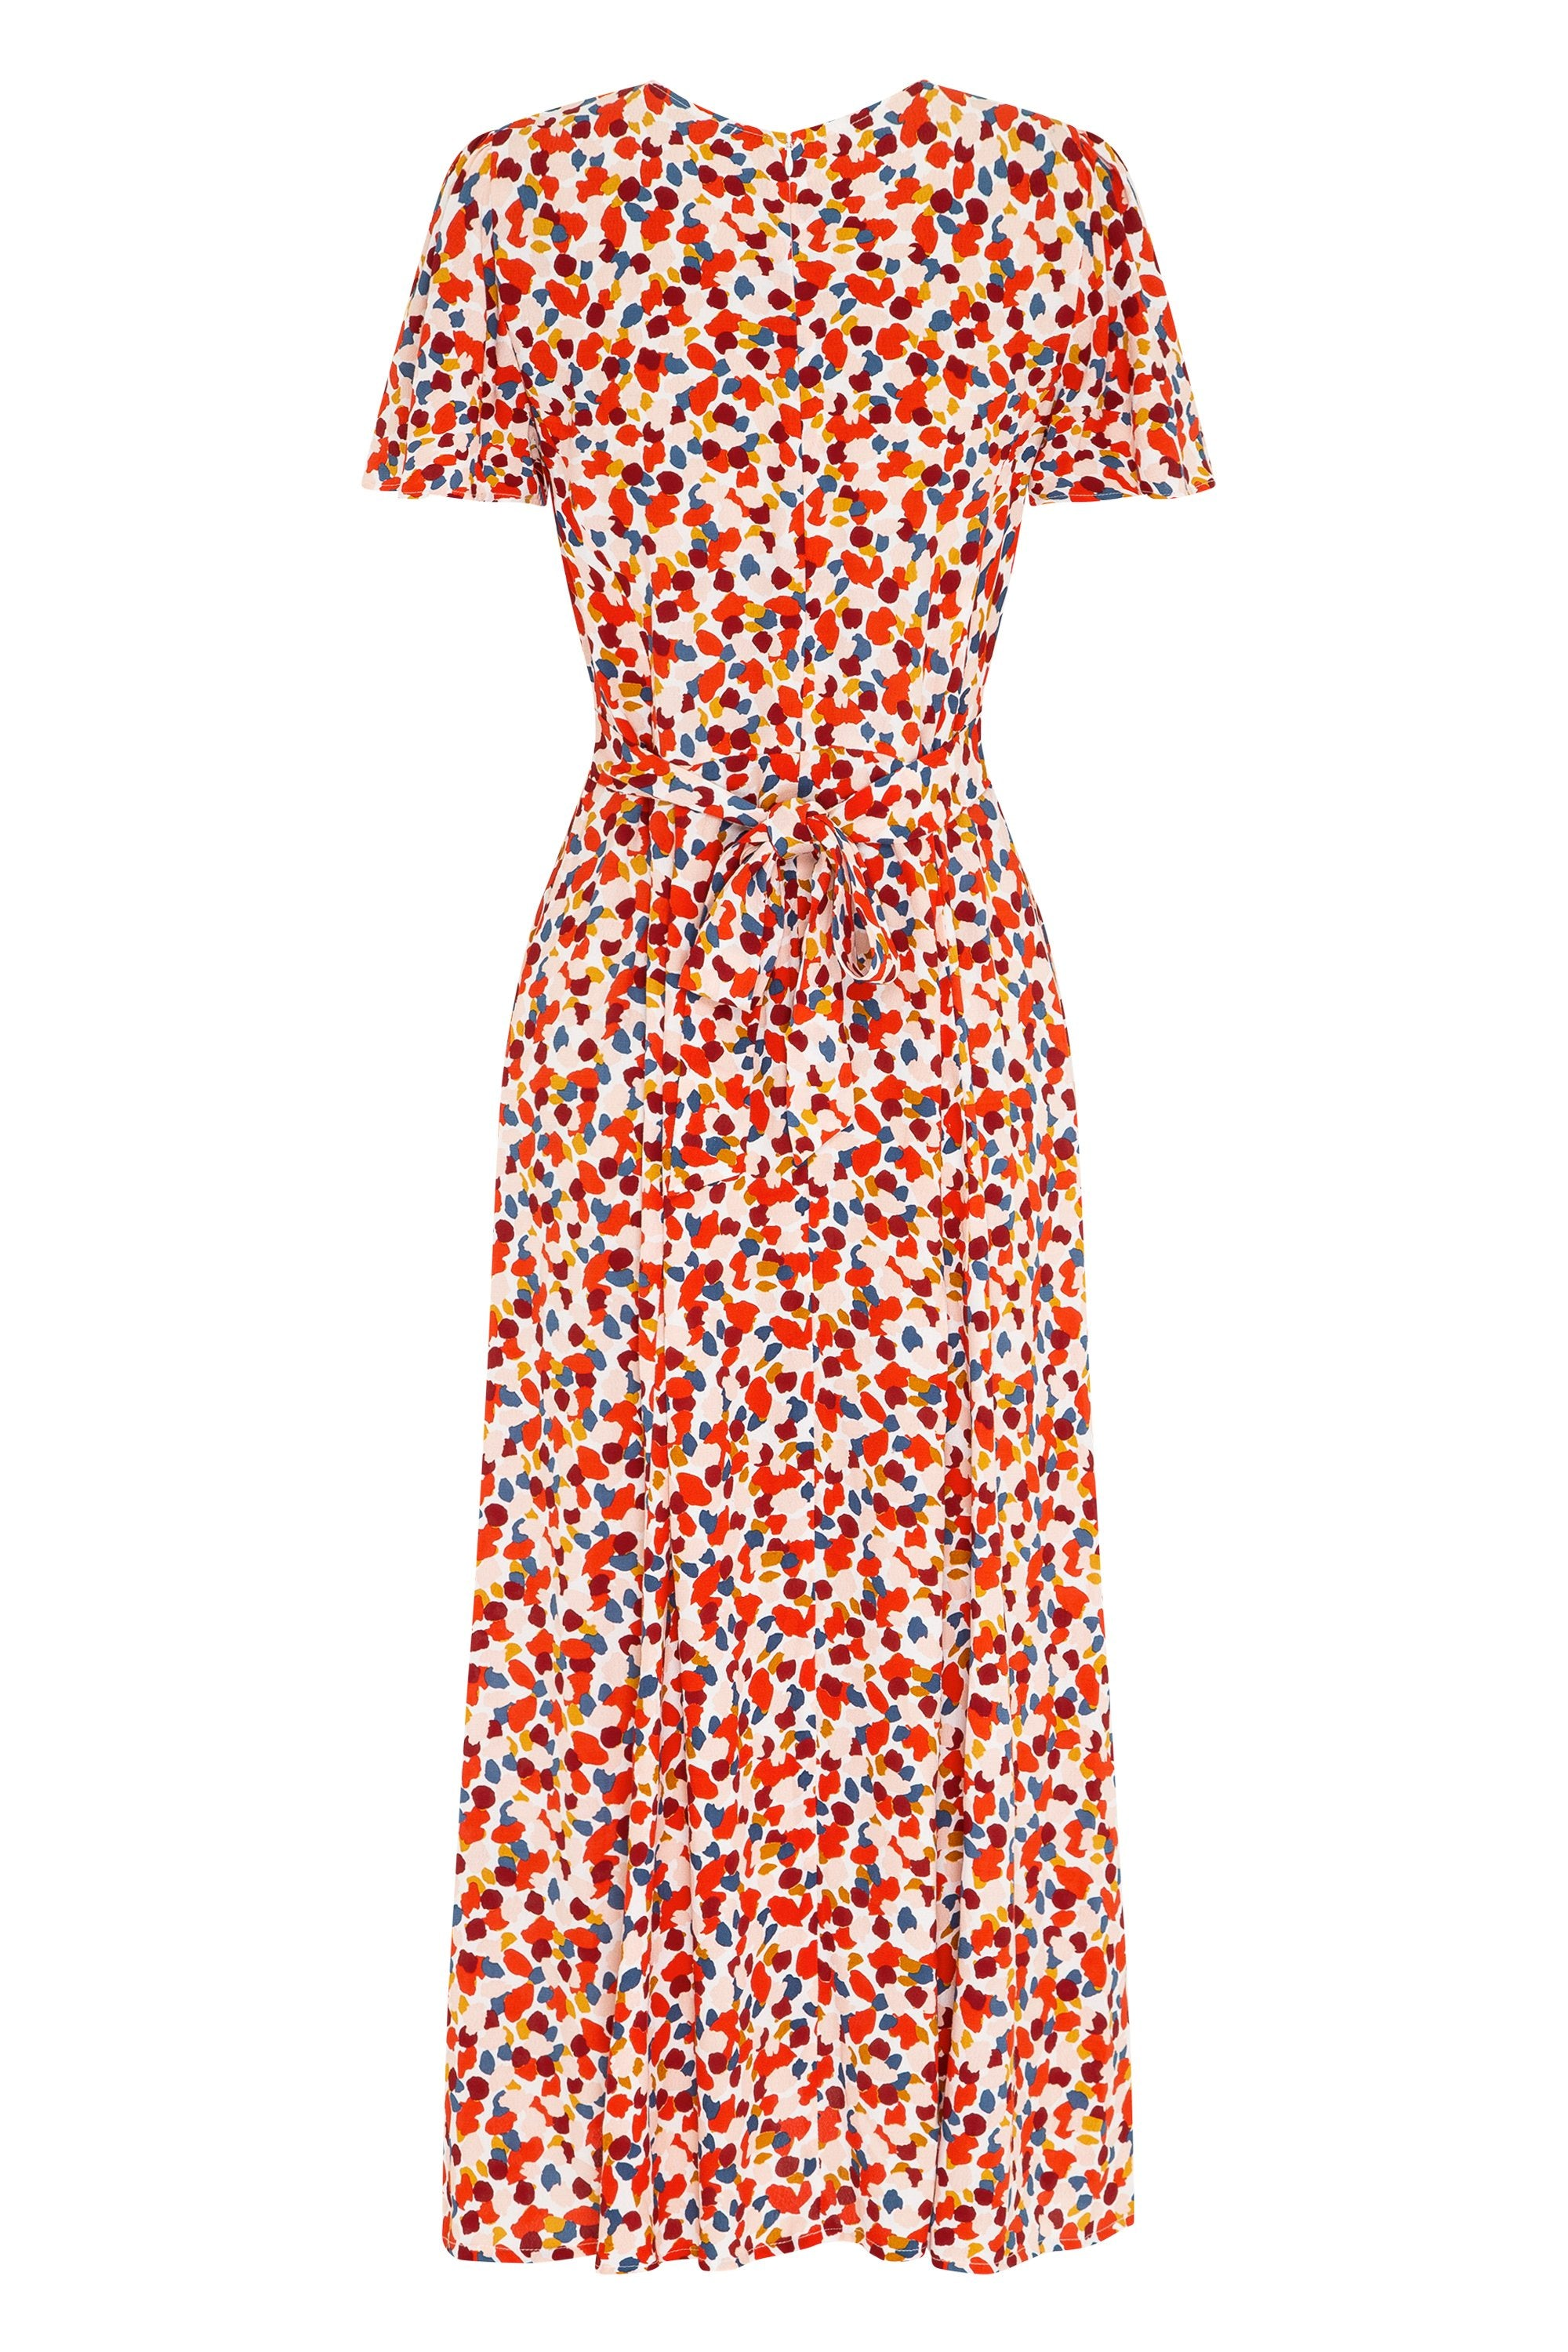 Luella Dress In Confetti